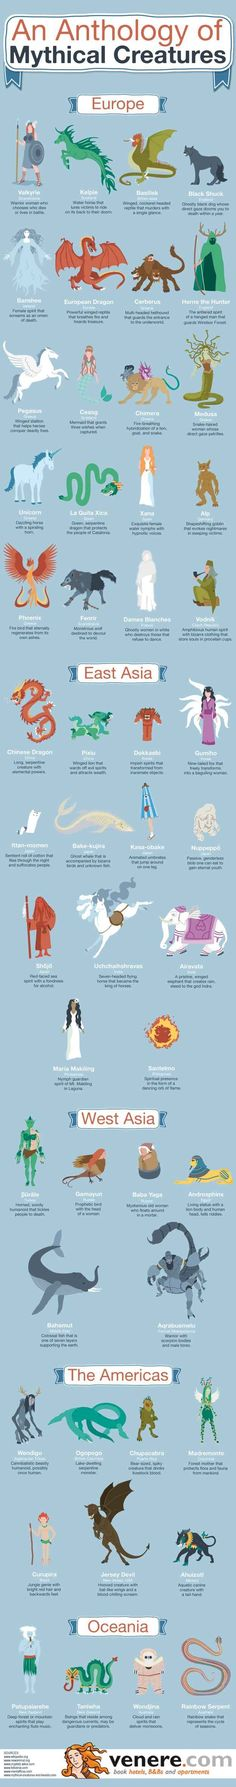 50 Mythical Creatures That Need More Face-Time